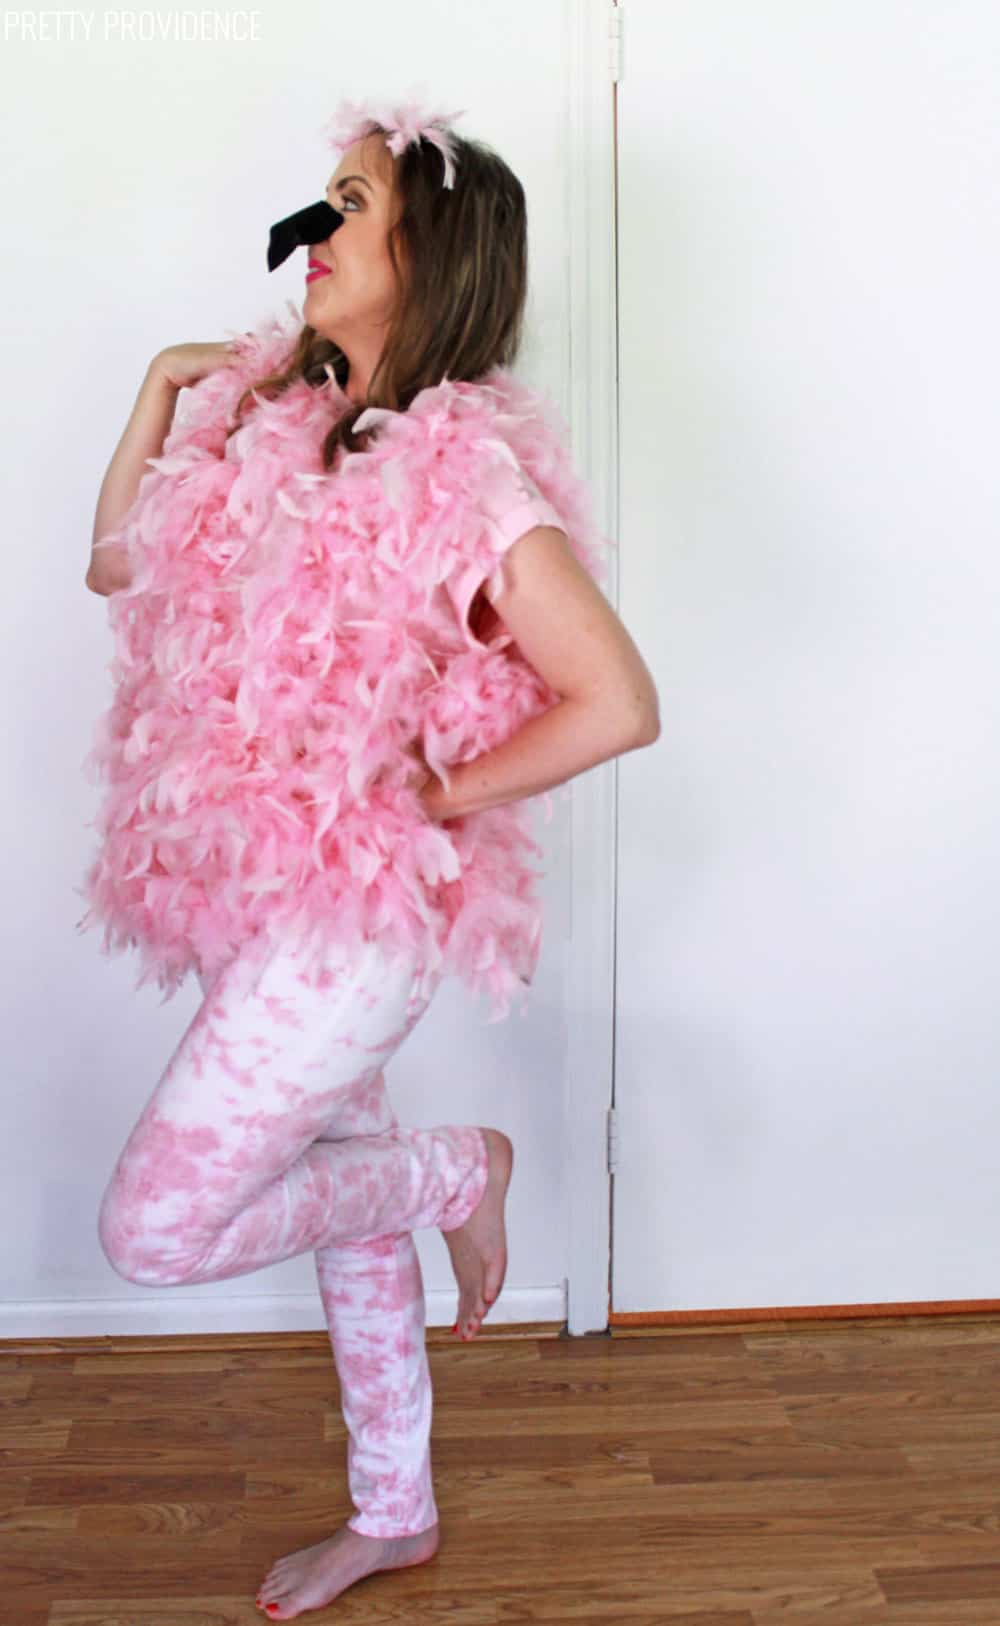 Woman in pink flamingo Halloween costume made with pink feather boas, posing like a flamingo on one leg.